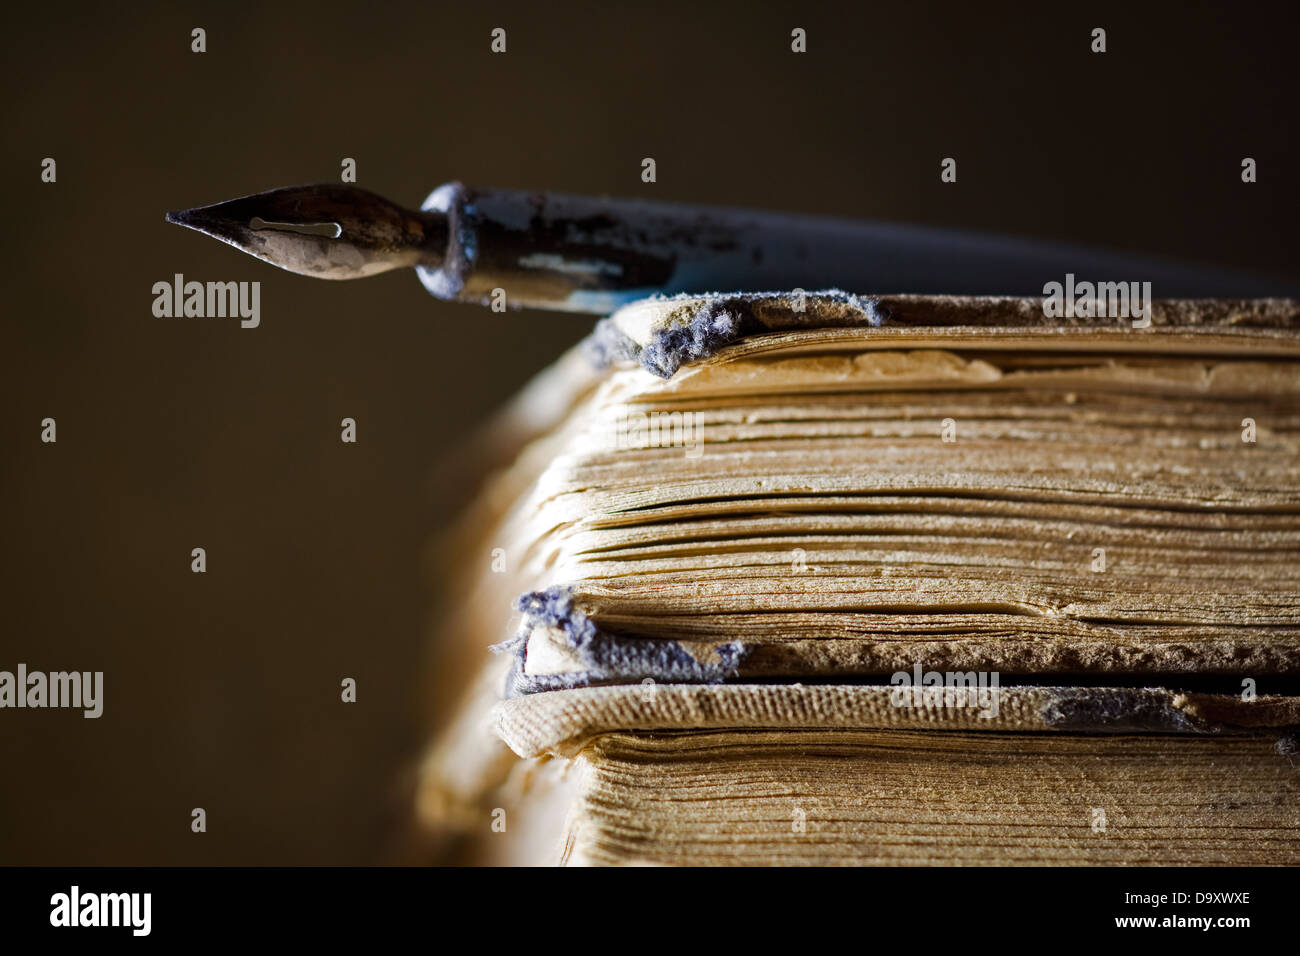 Old books and pen - Stock Image